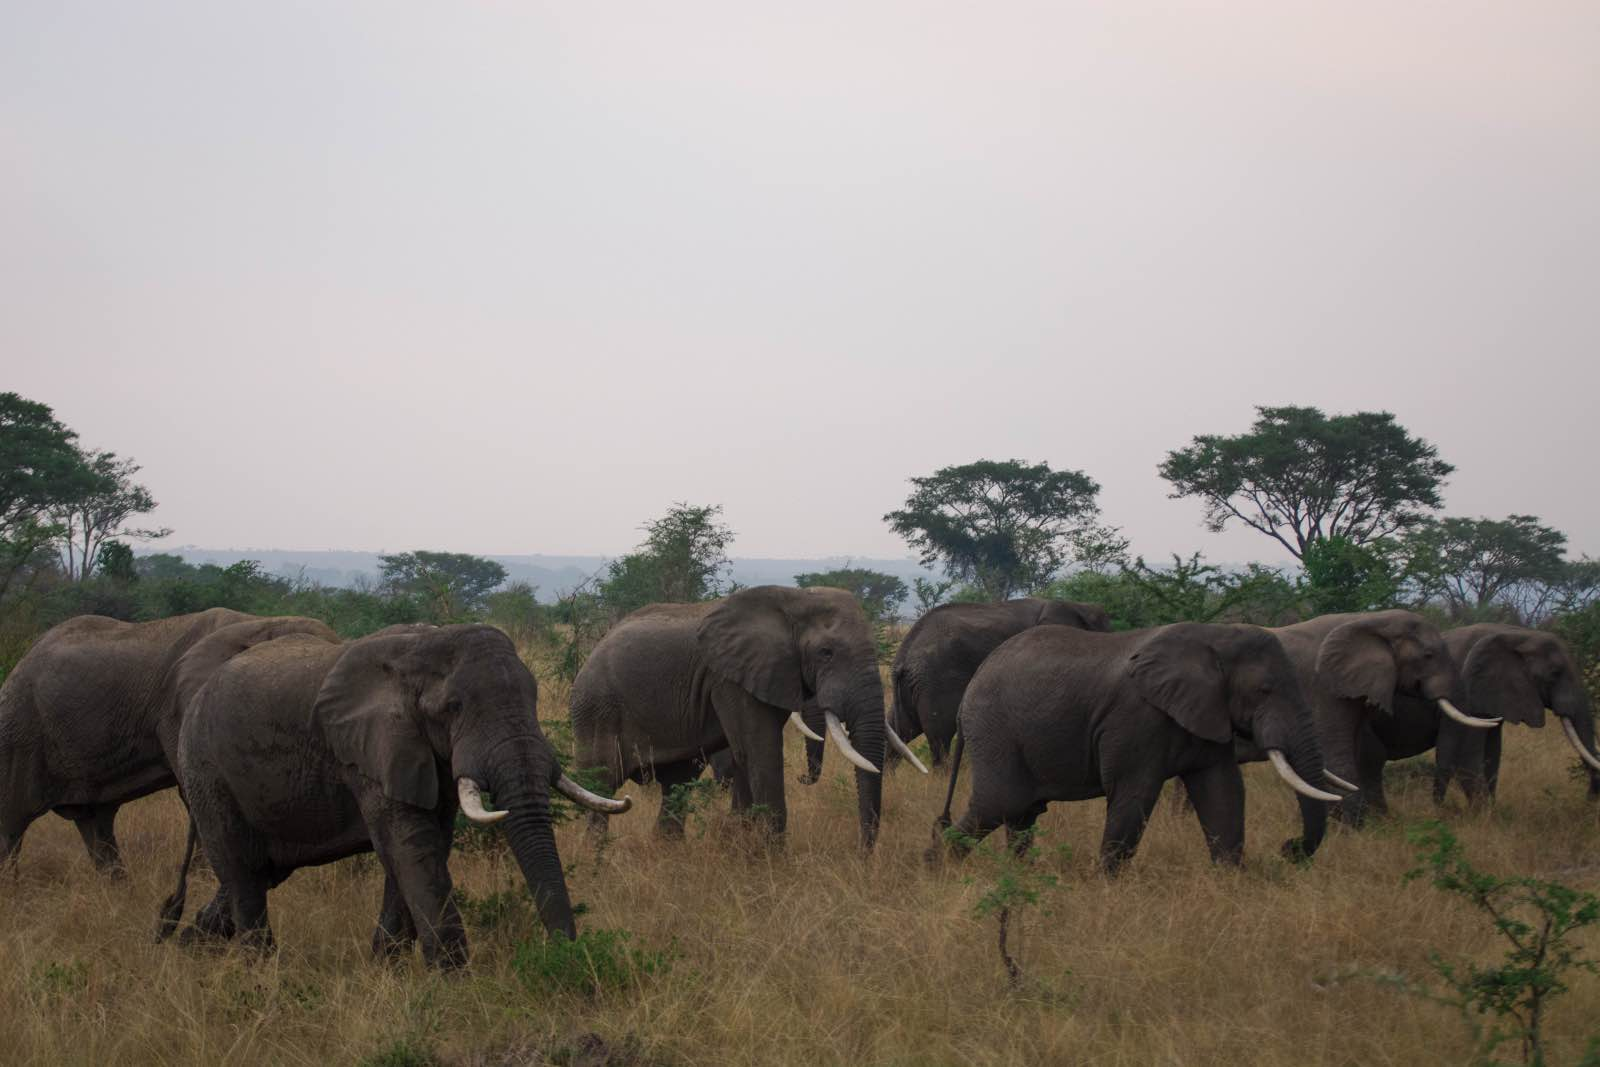 Elephants are a common sight on the savannah of QENP